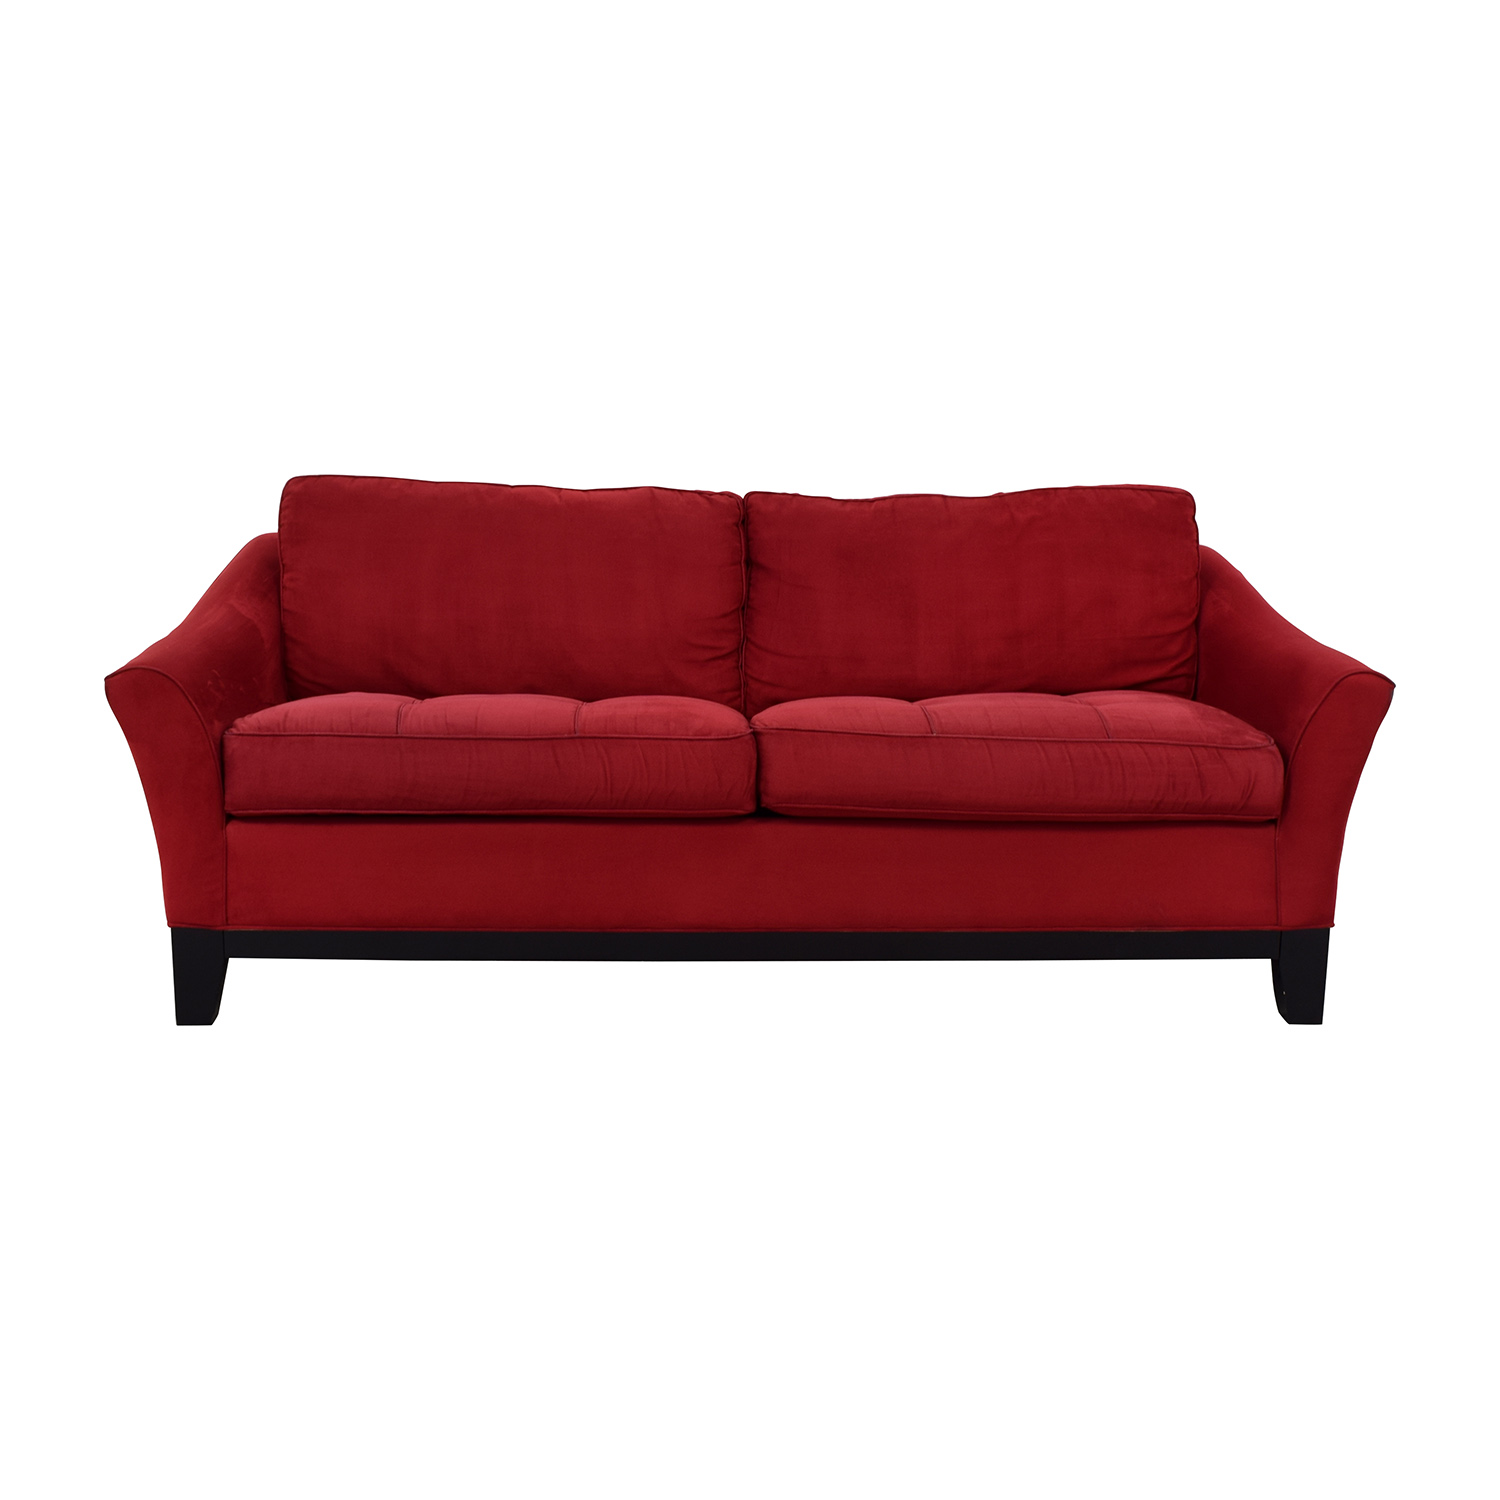 shop Raymour & Flanigan Raymour & Flanigan Red Sleeper Sofa online